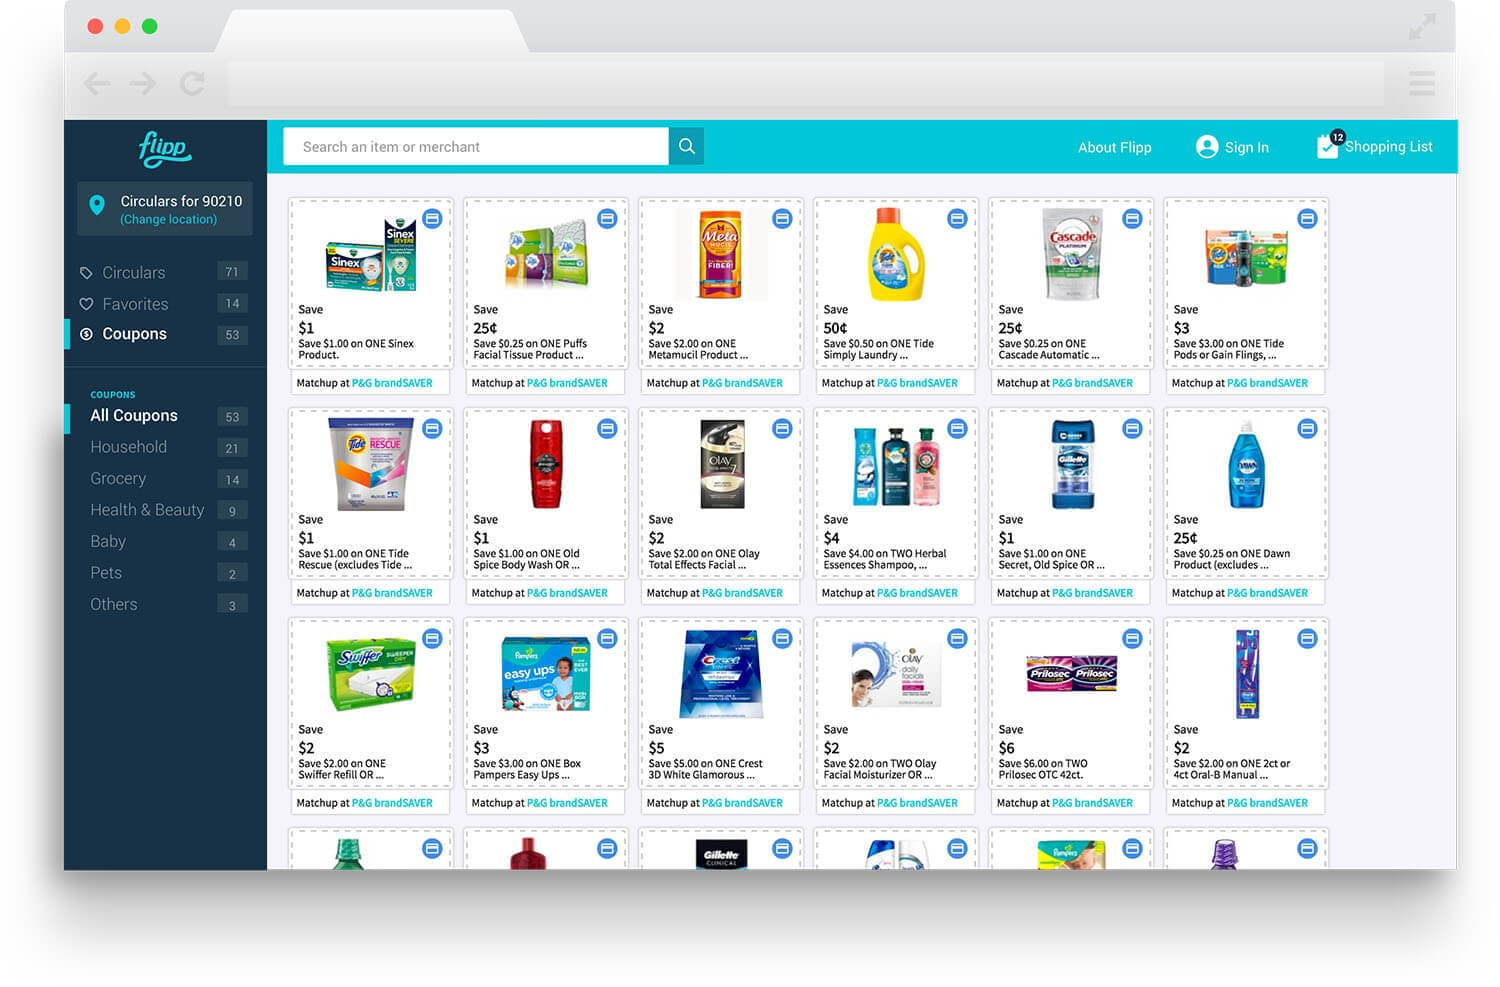 image of flipp.com coupons page